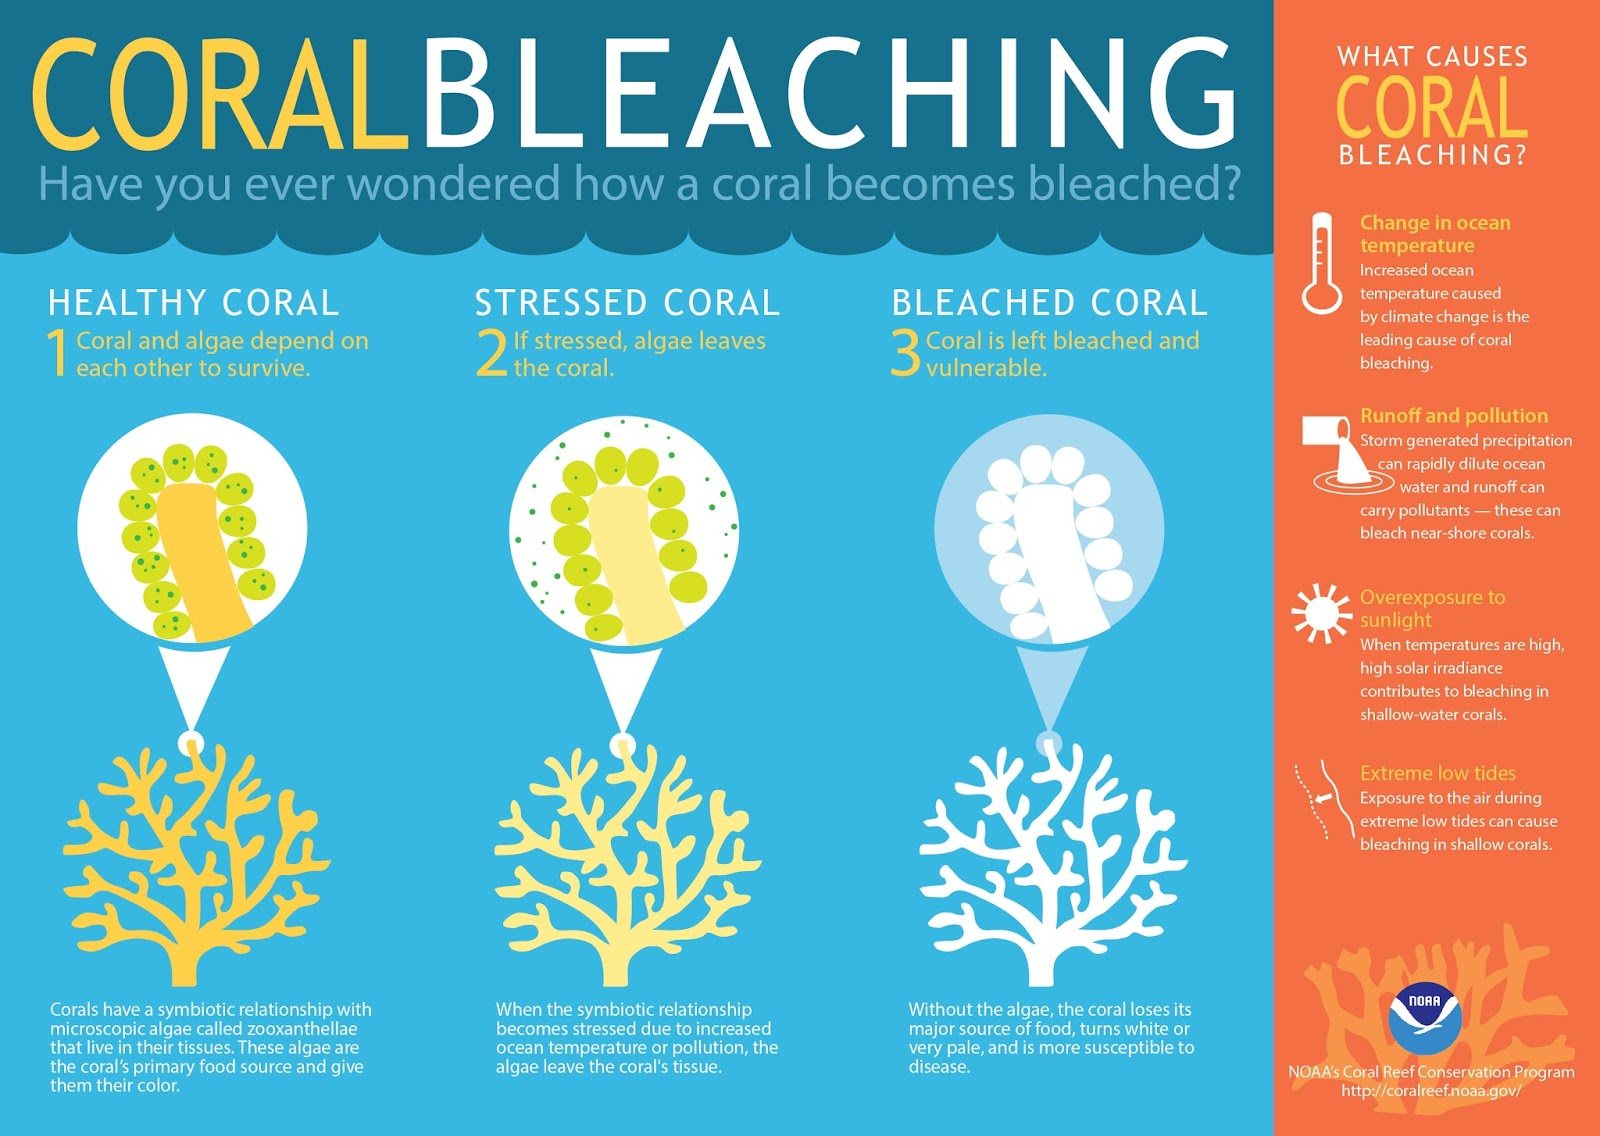 Coral bleaching is caused purely by warmer waters